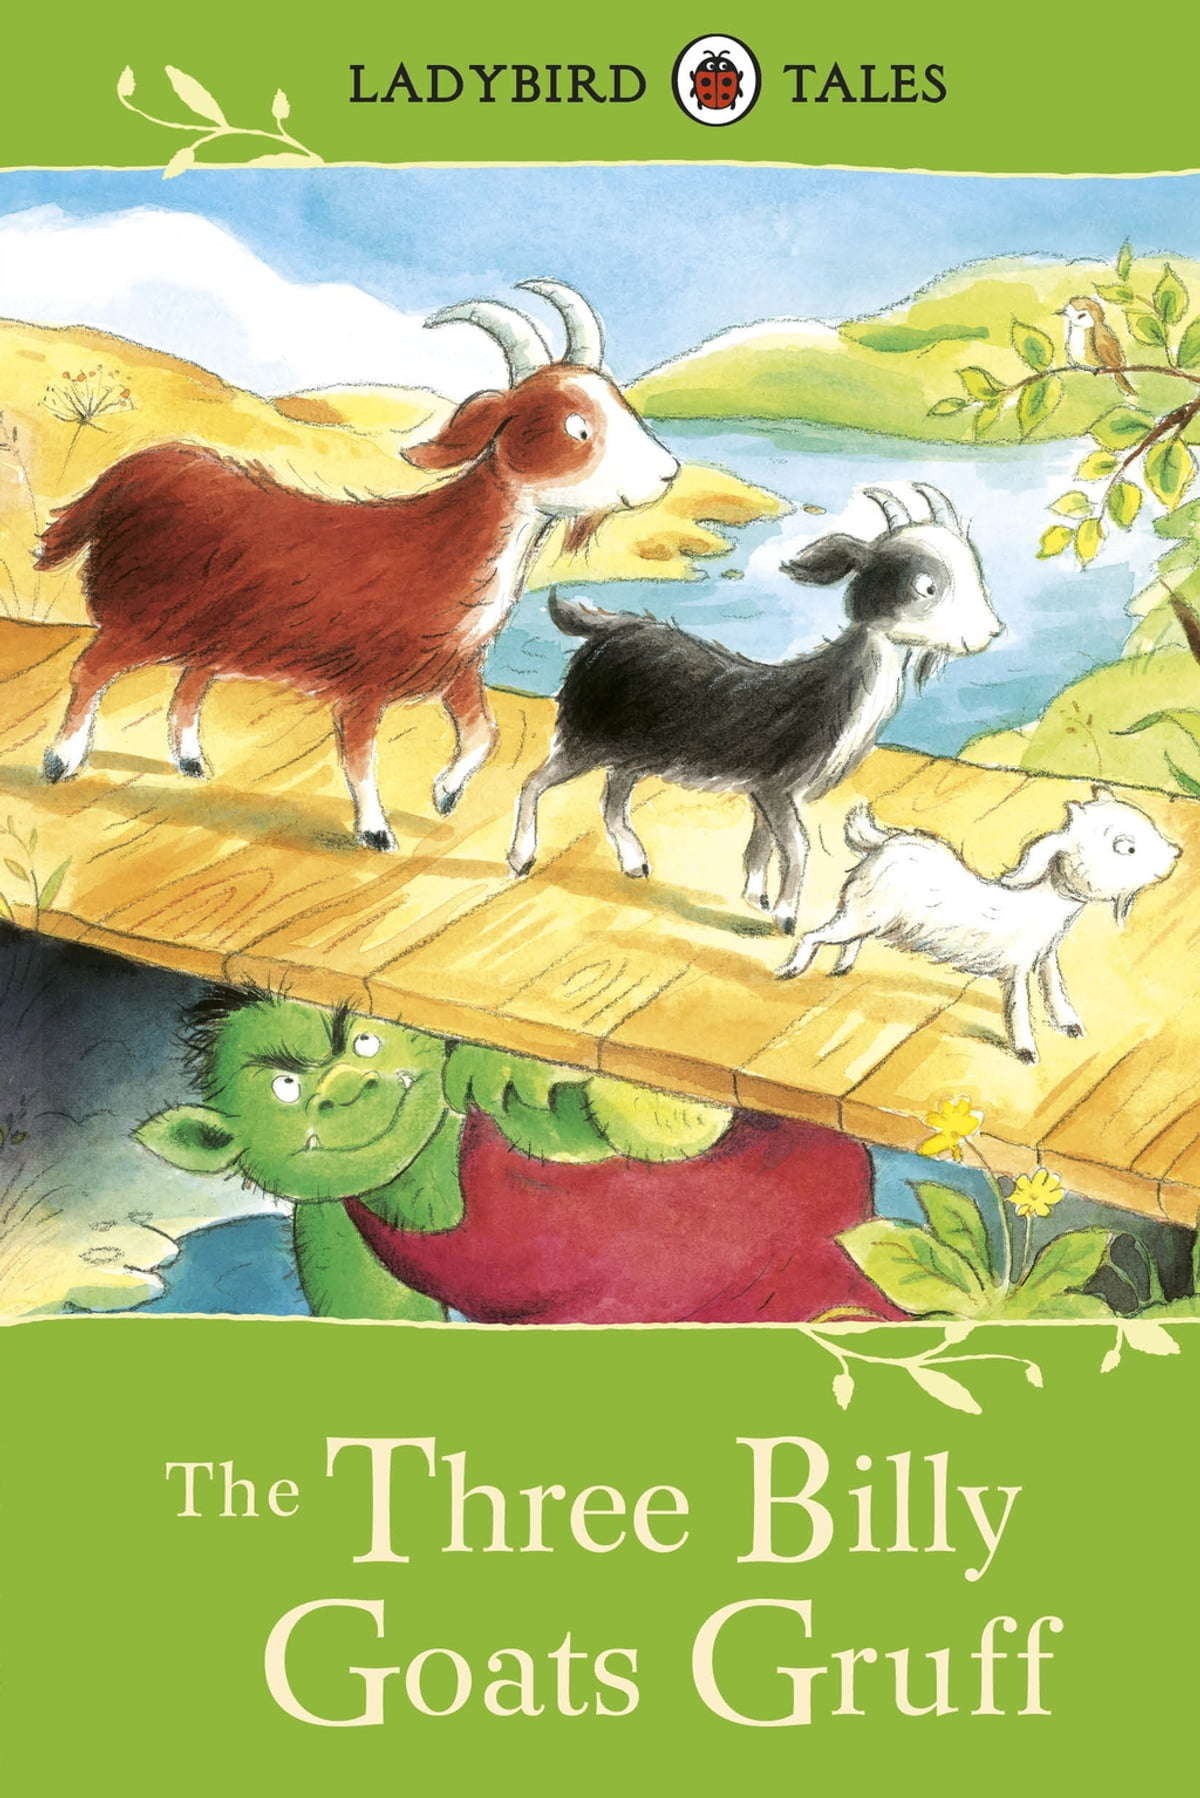 Ladybird Tales The Three Billy Goats Gruff Ebook By Vera